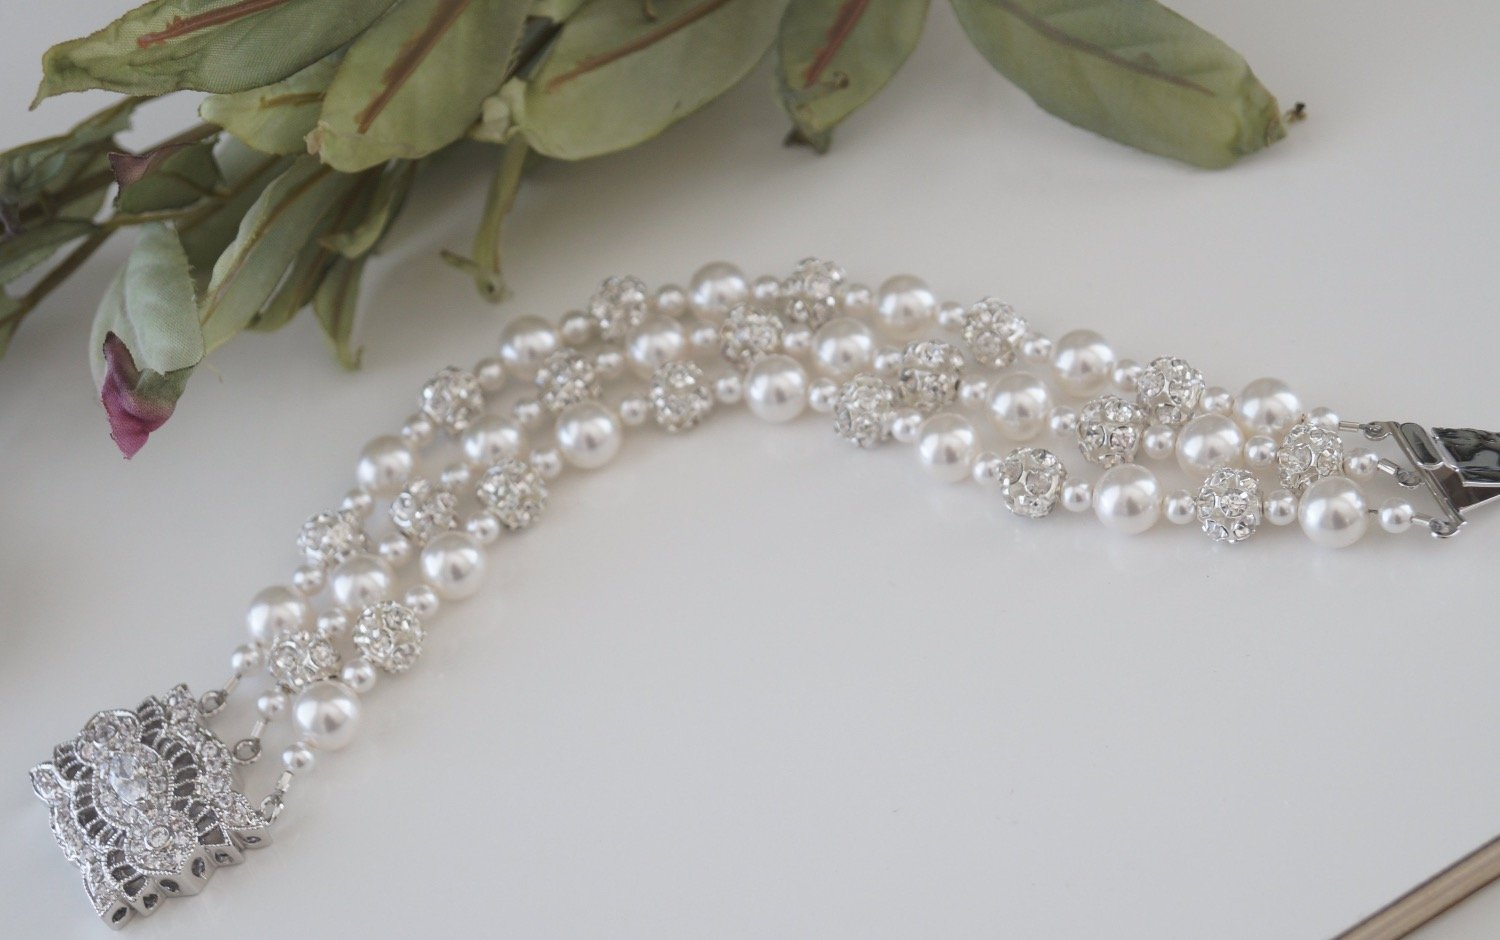 Three strand pearl bracelet wedding jewelry with pearls and crystals - Clairesbridal - 6